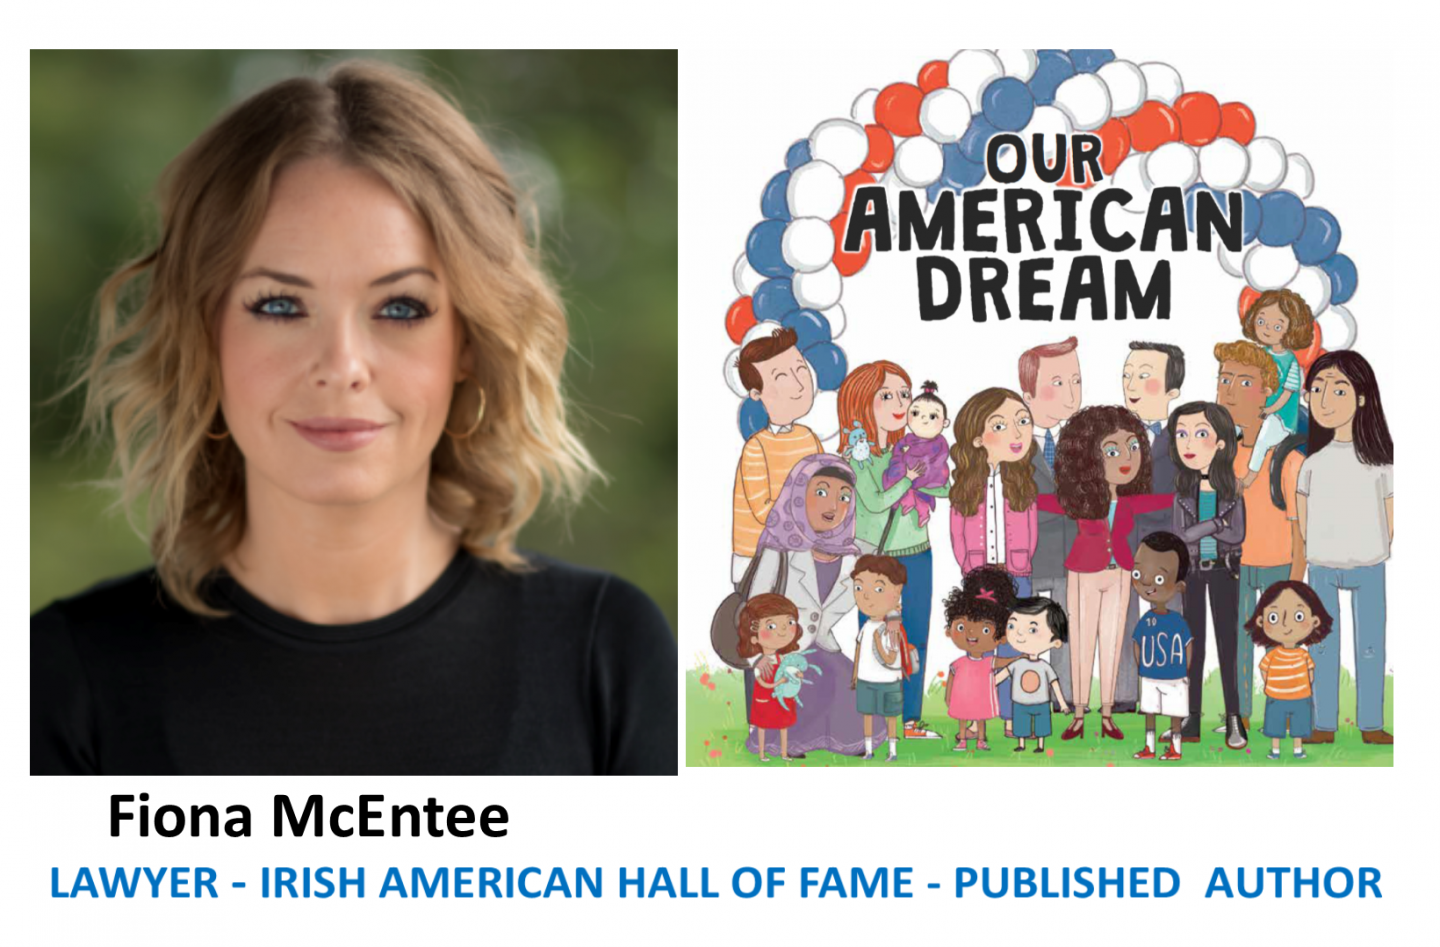 Fiona McEntee - New Children's Book Published 'Our American Dream'